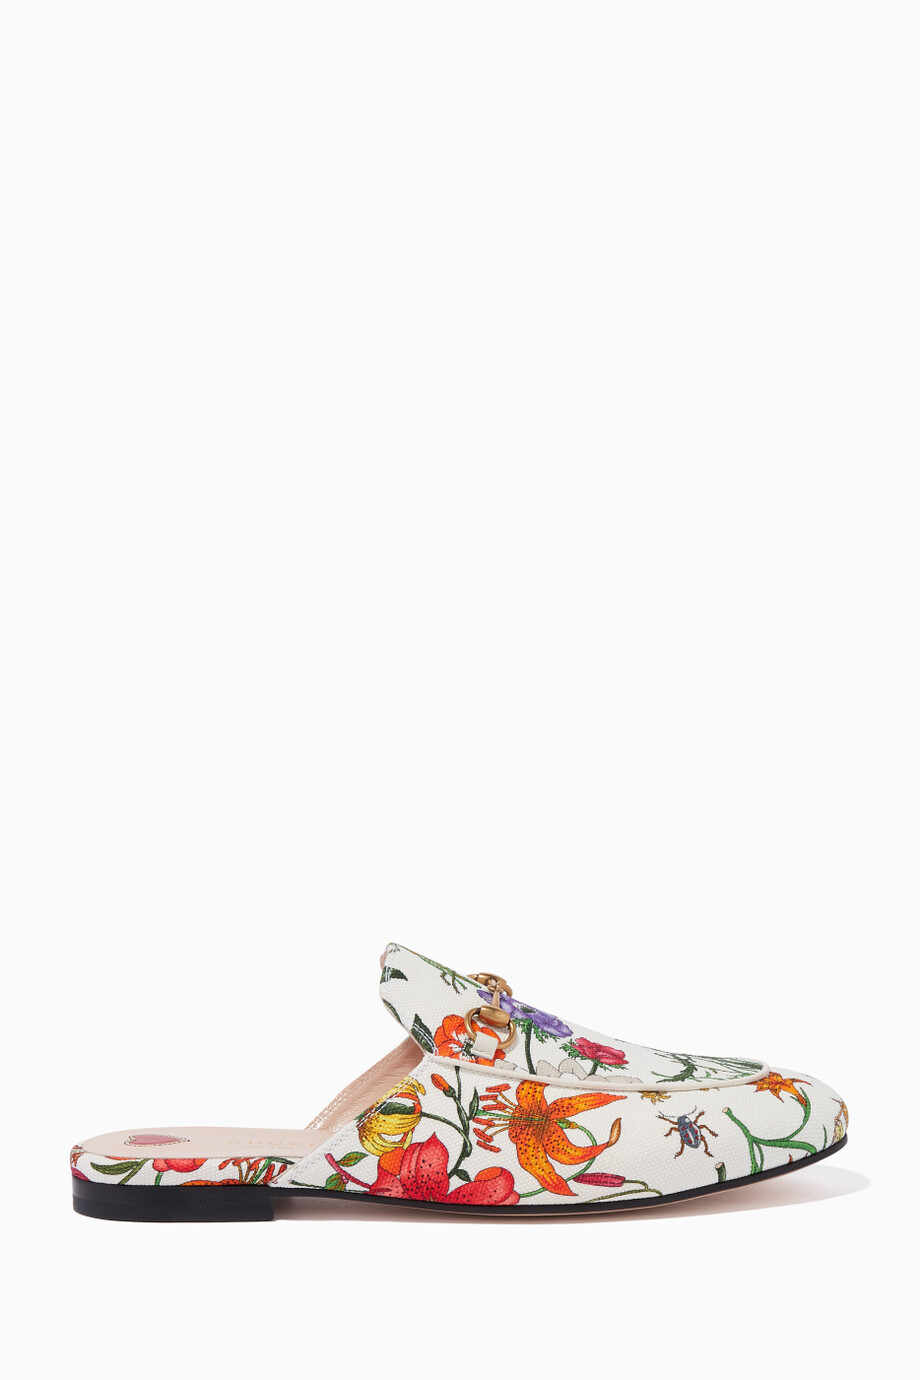 5bc9d02df4 Shop Gucci White White Floral-Print Princetown Slippers for Women ...